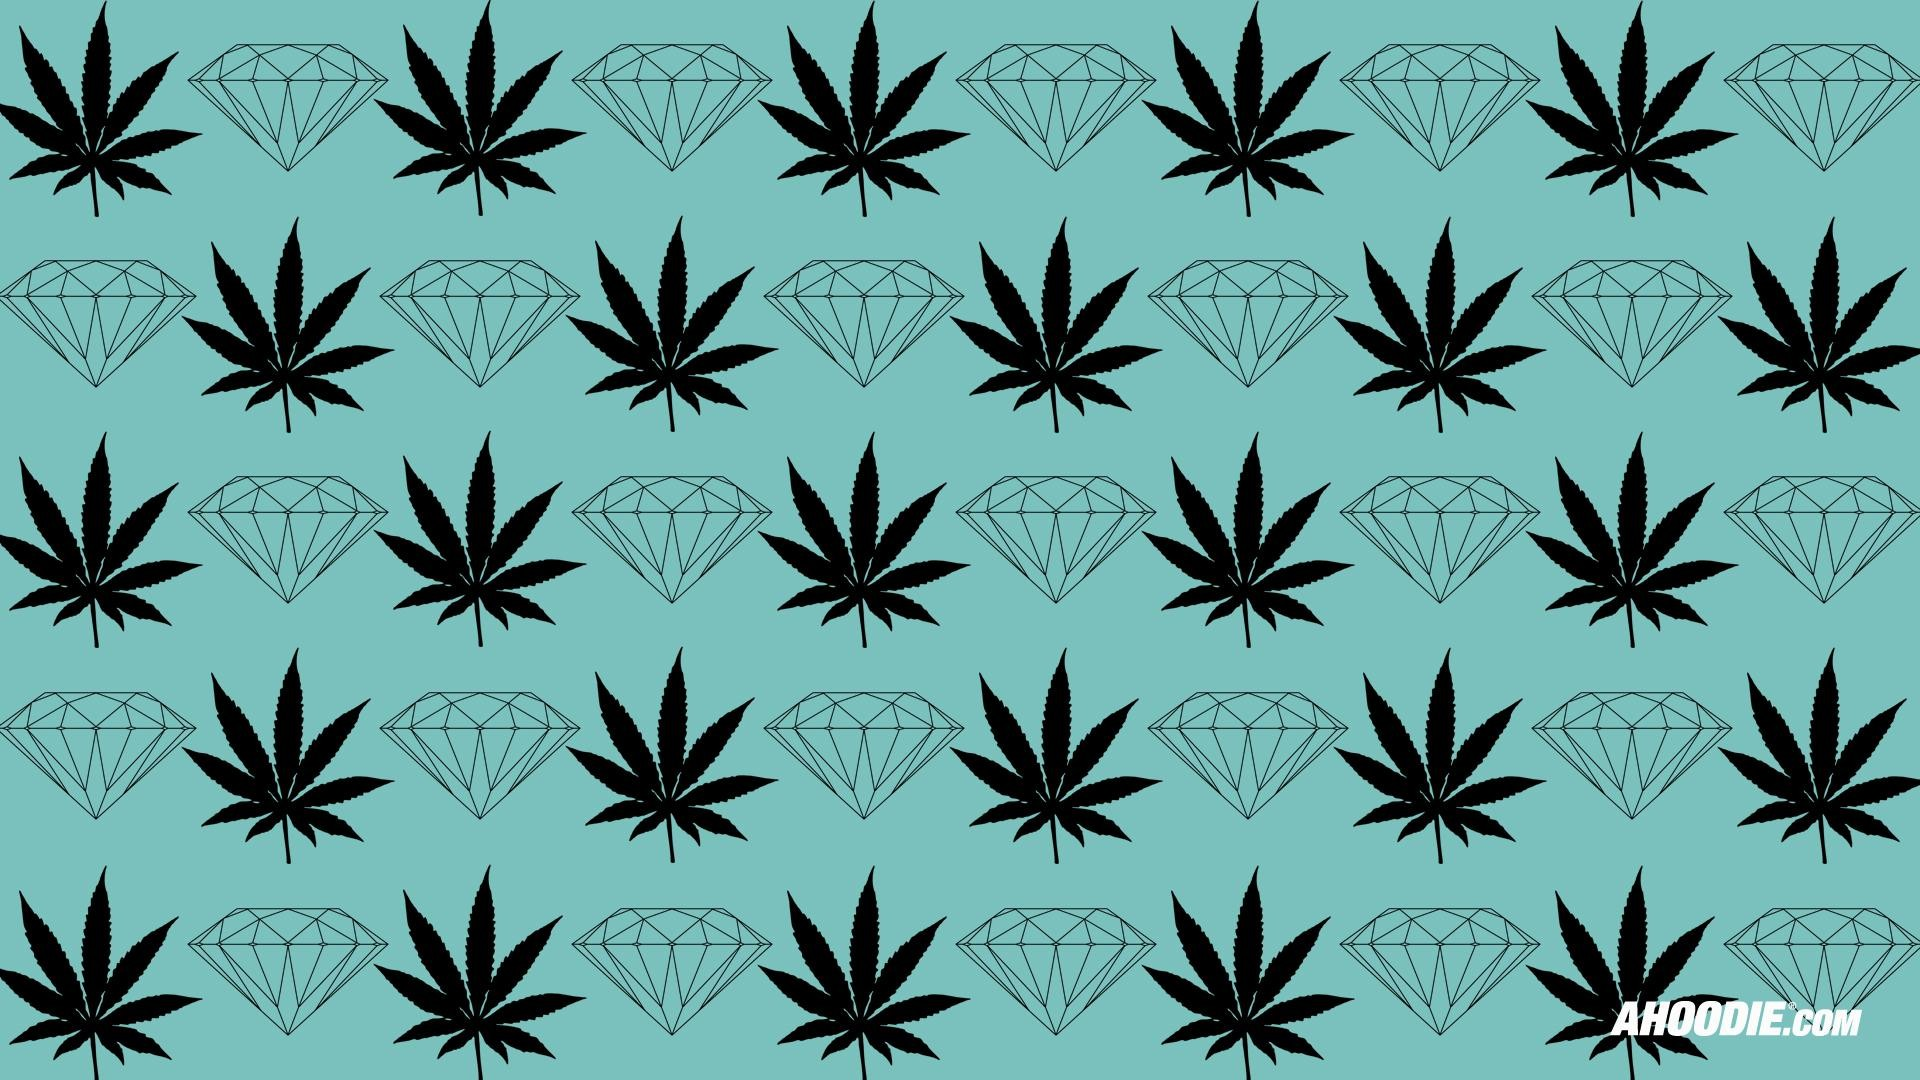 Huf wallpapers 68 images 1920x1080 diamond supply wallpapers hd wallpapercraft voltagebd Image collections